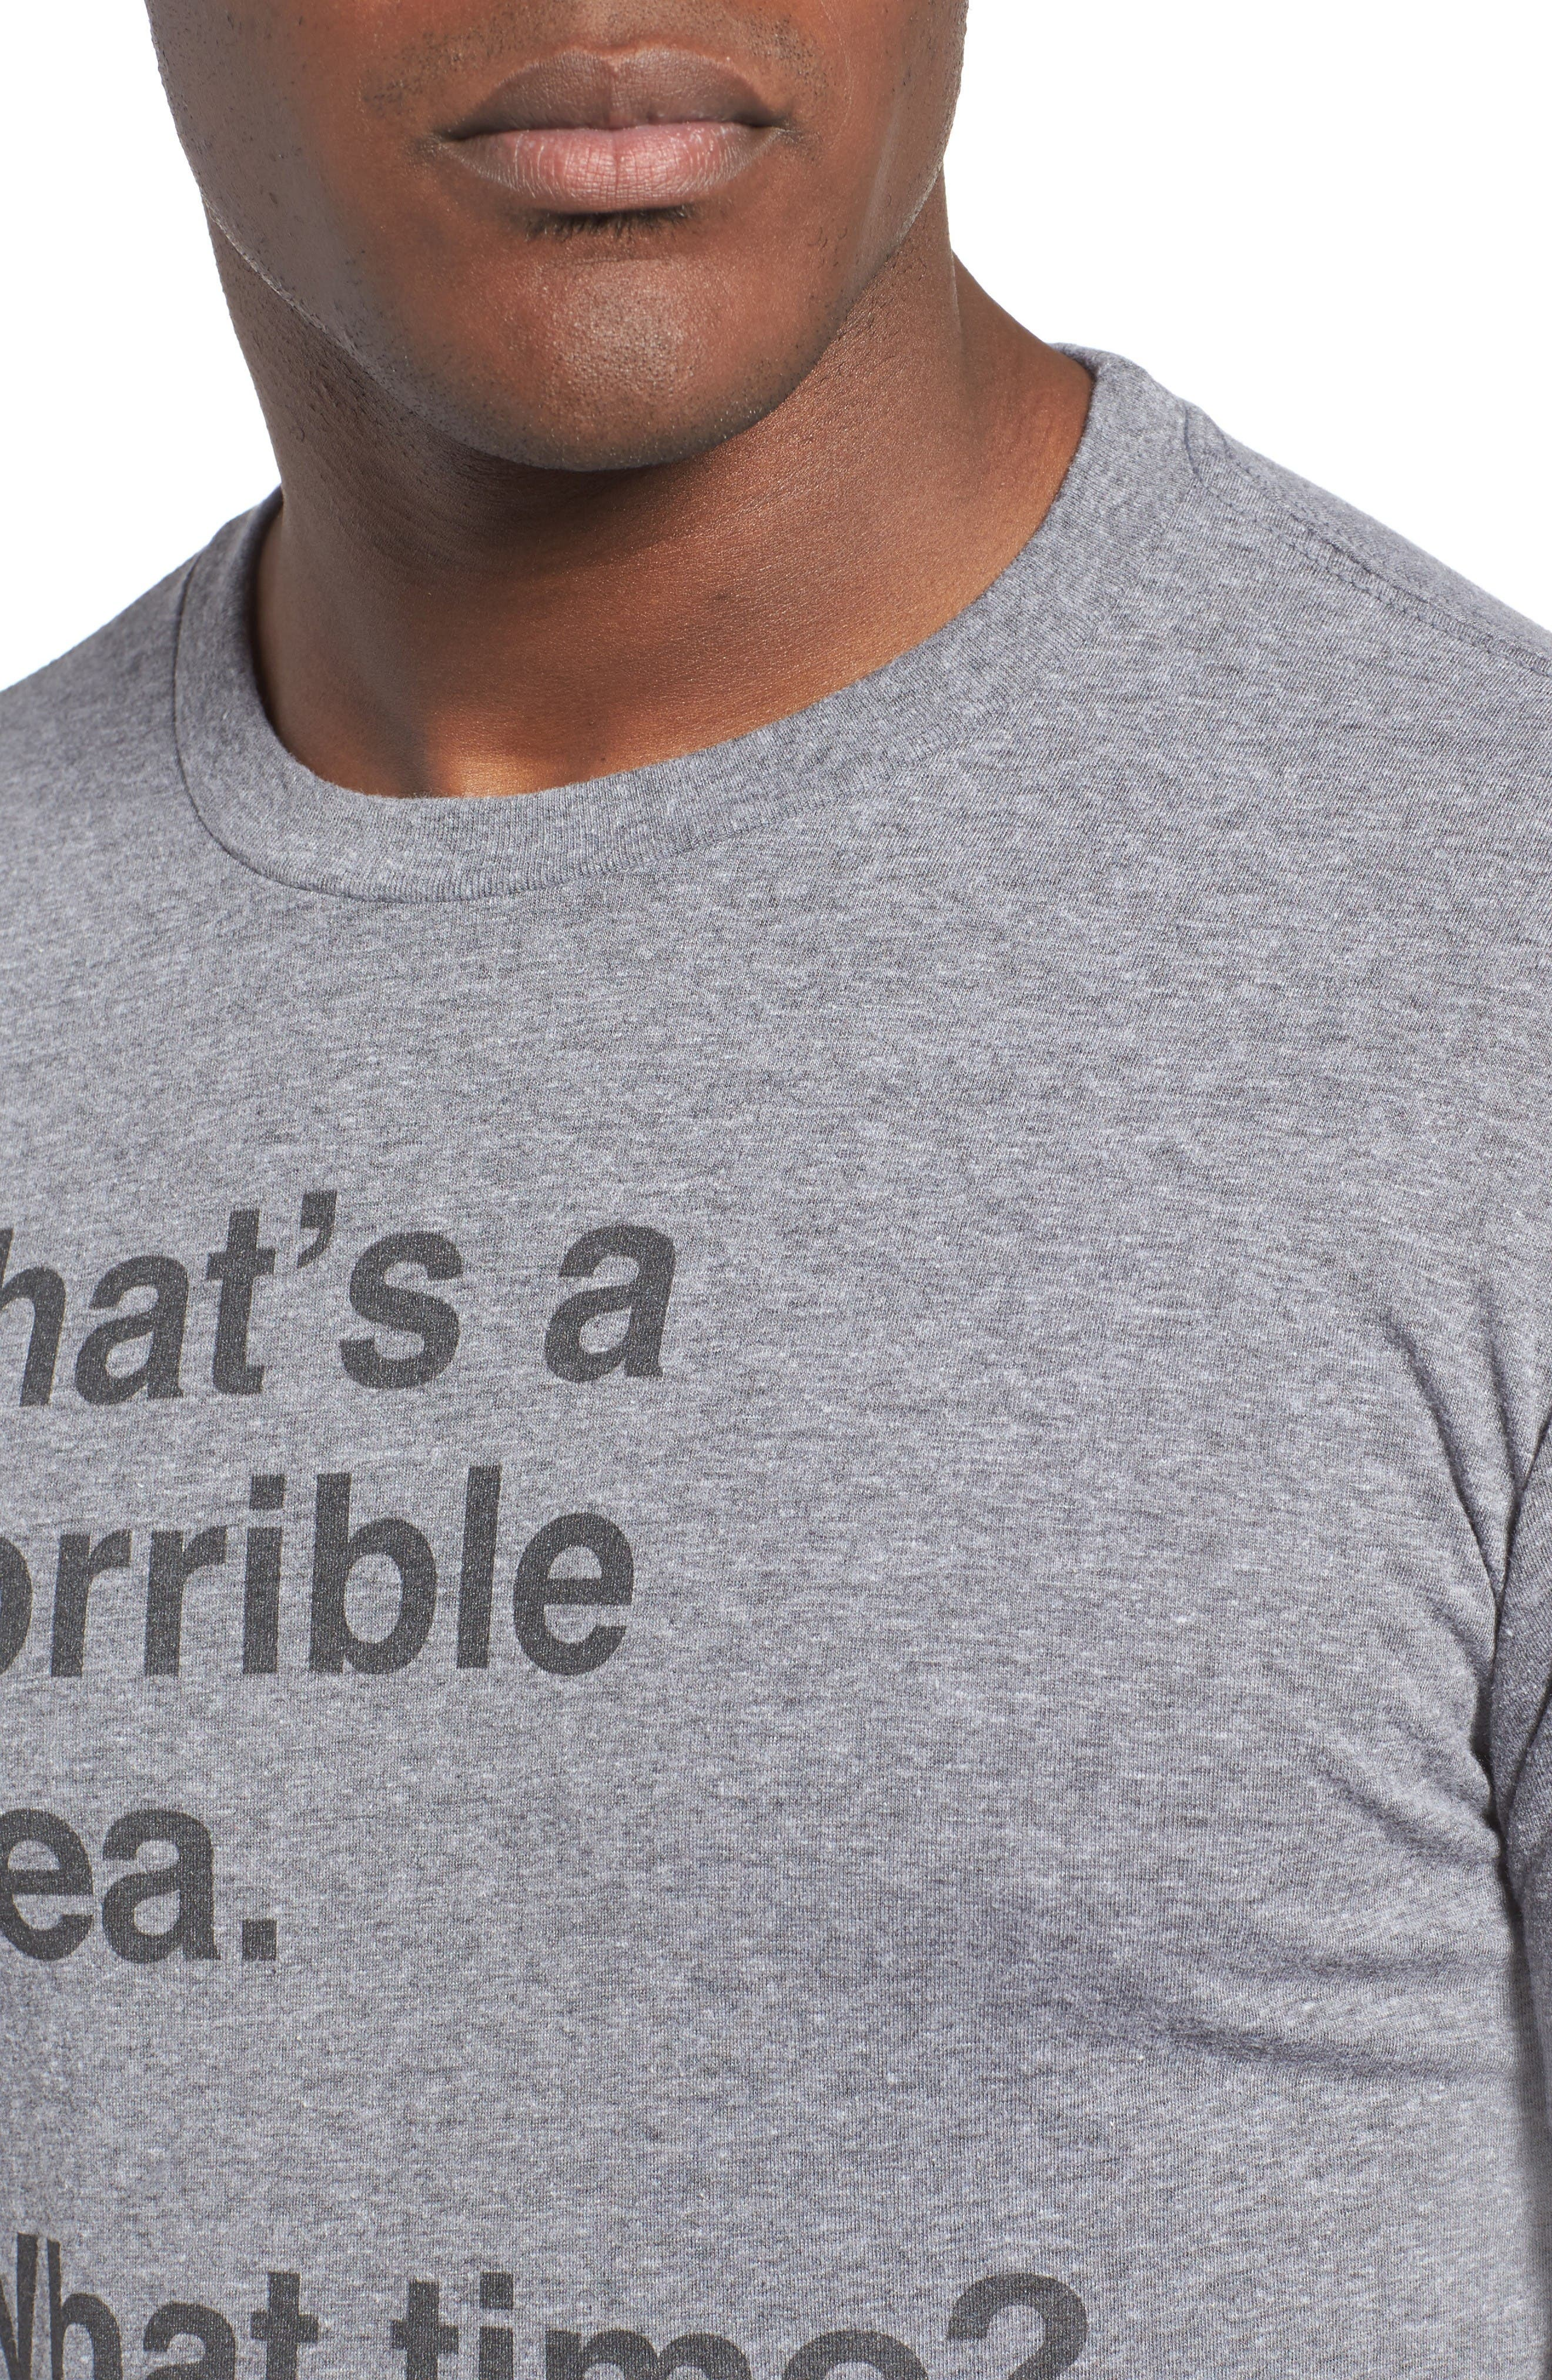 Horrible Idea Graphic T-Shirt,                             Alternate thumbnail 4, color,                             Med Grey